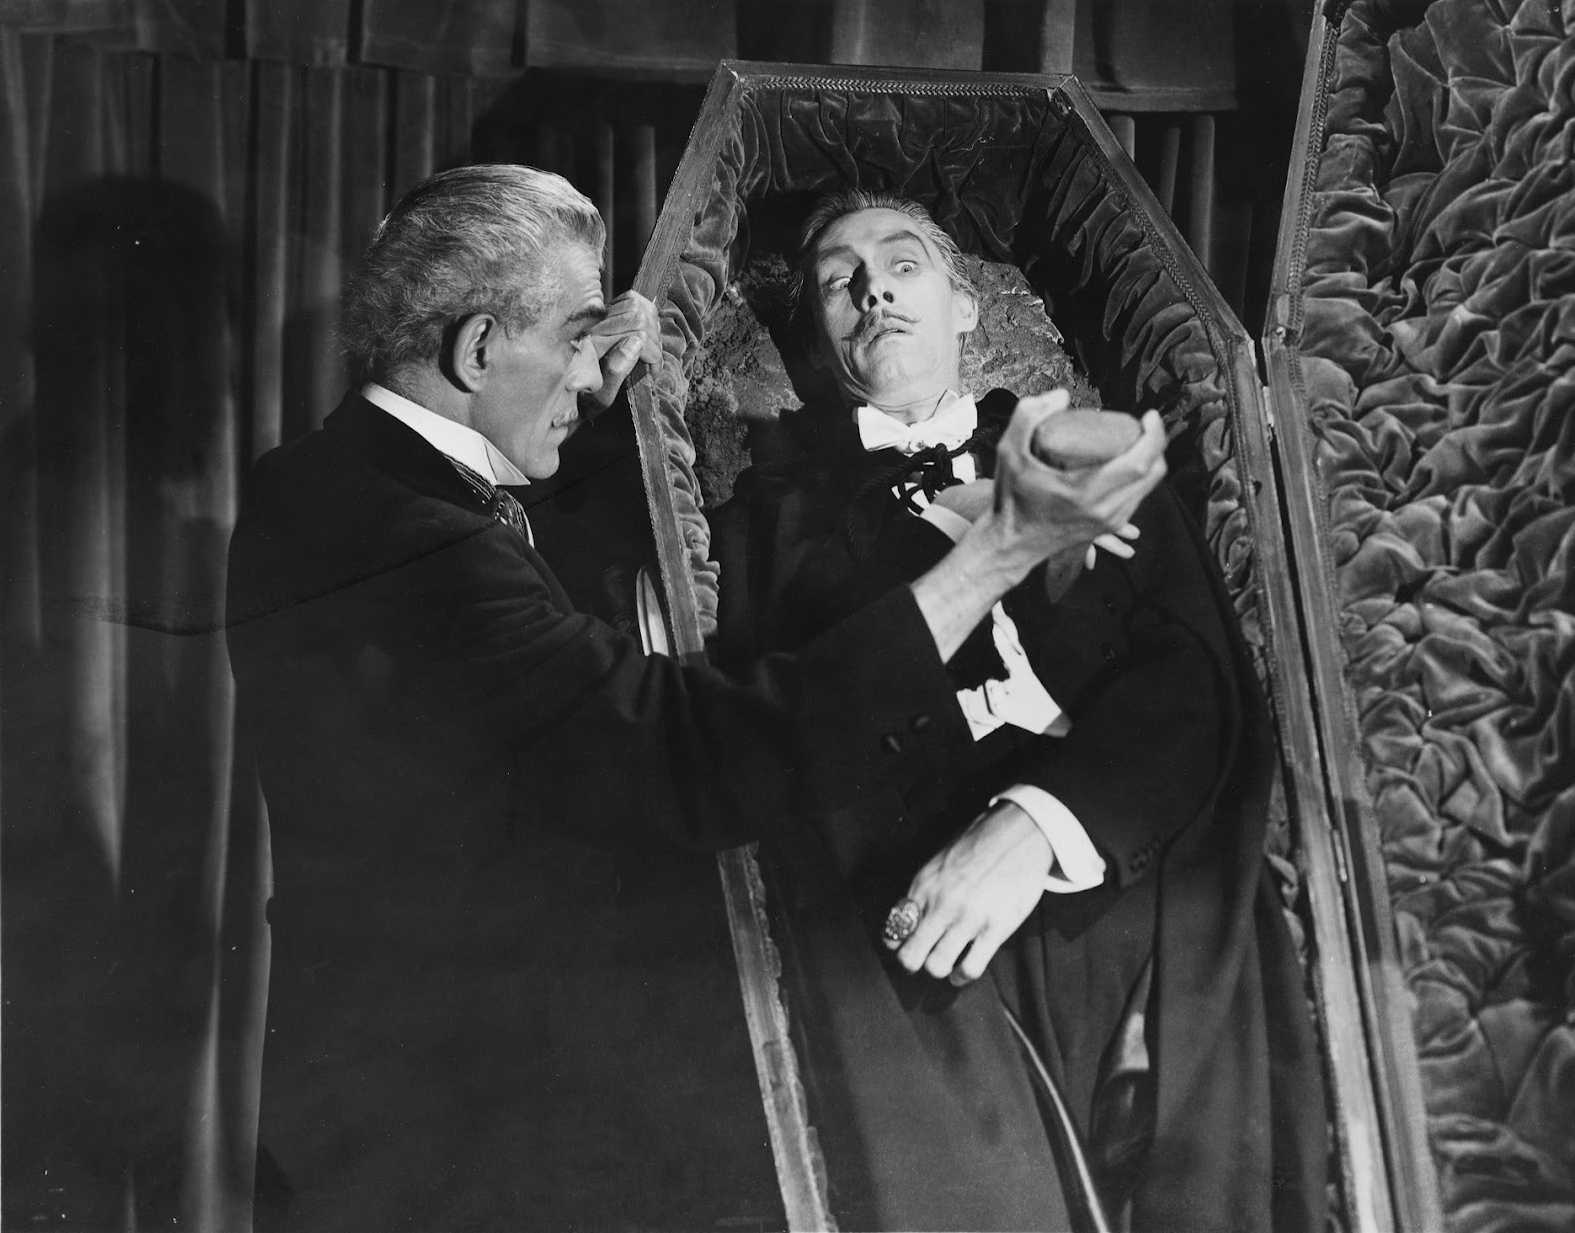 Dr Niemann (Boris Karloff) revives Count Dracula (John Carradine) in House of Frankenstein (1944)